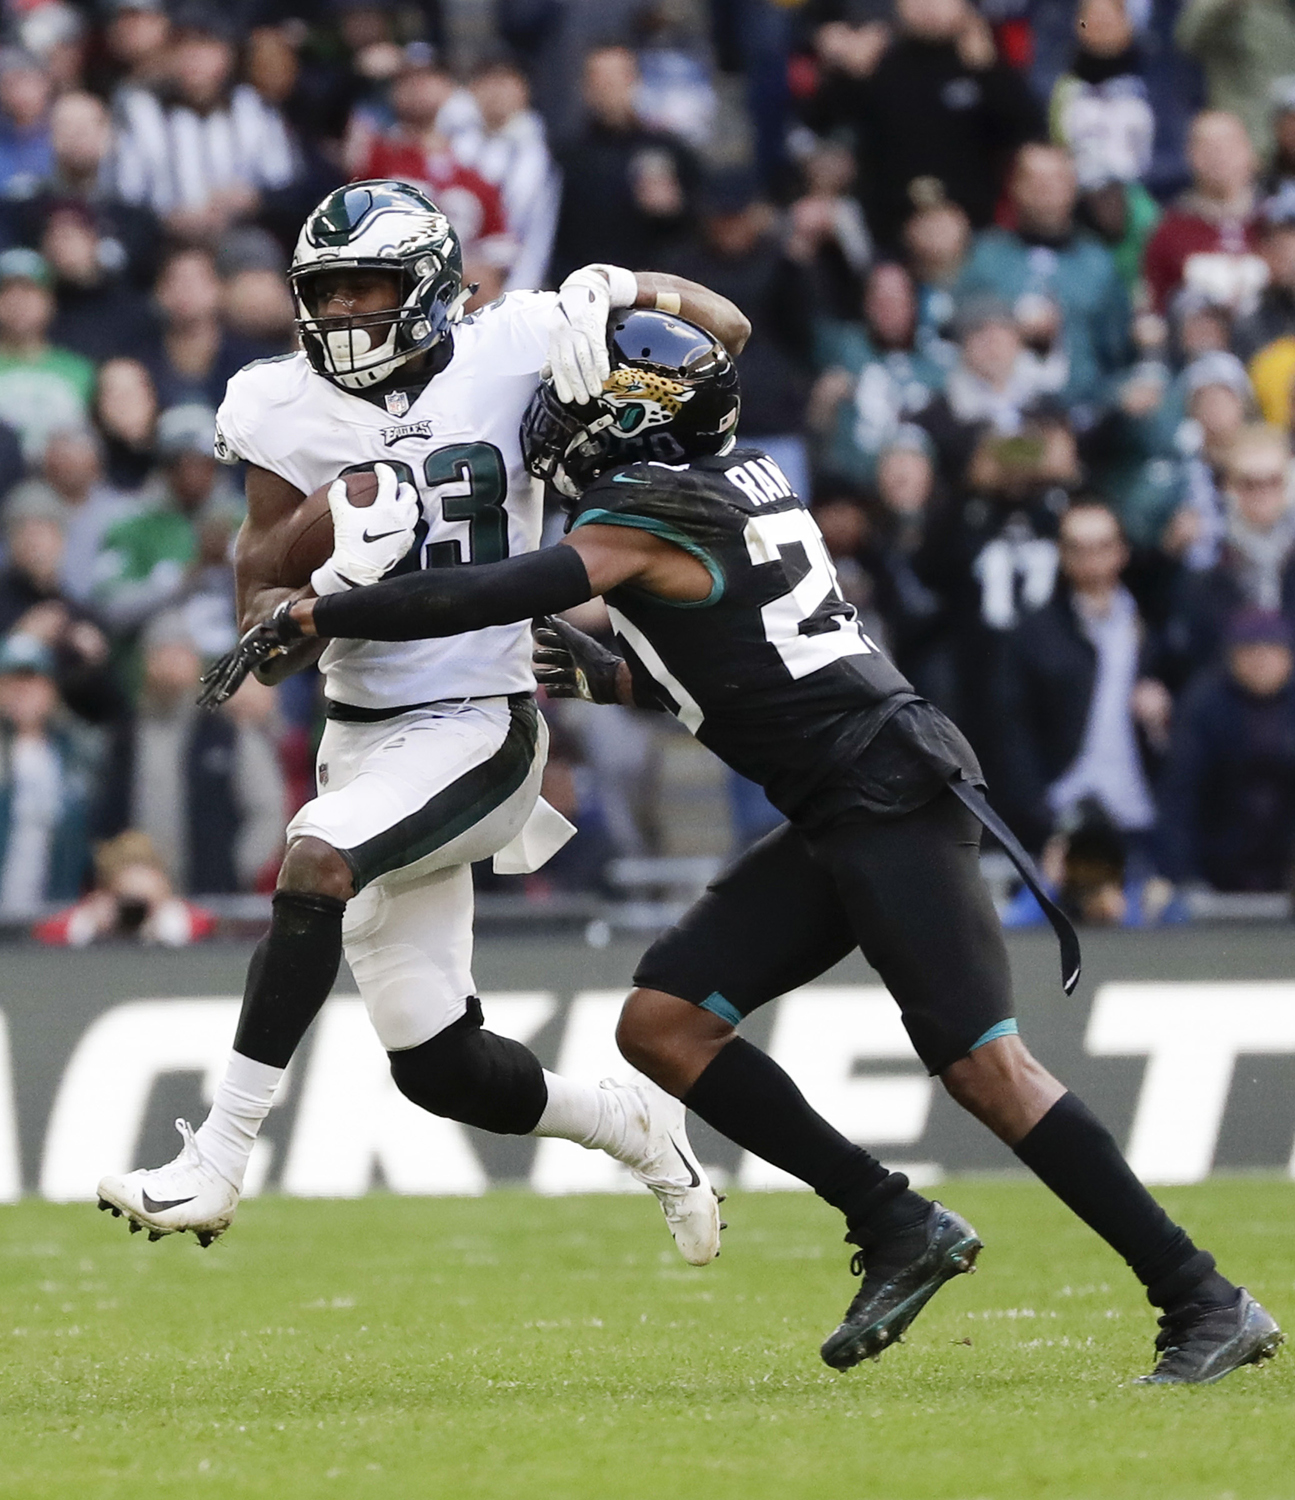 Philadelphia Eagles running back Josh Adams runs against Jacksonville Jaguars cornerback Jalen Ramsey during the third quarter on Oct. 28.